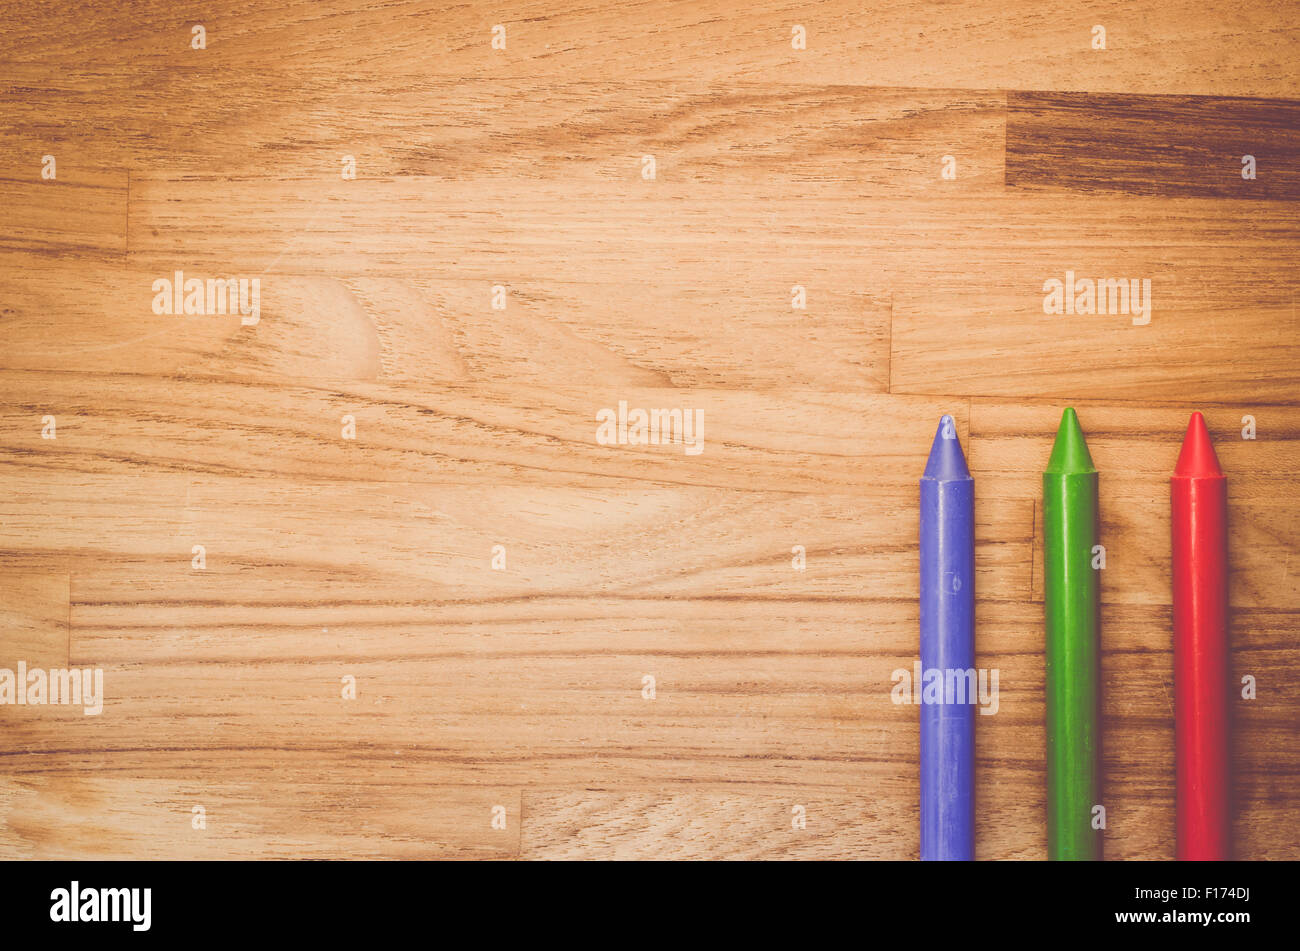 red green blue colored wax crayons on a natural wood. Black Bedroom Furniture Sets. Home Design Ideas